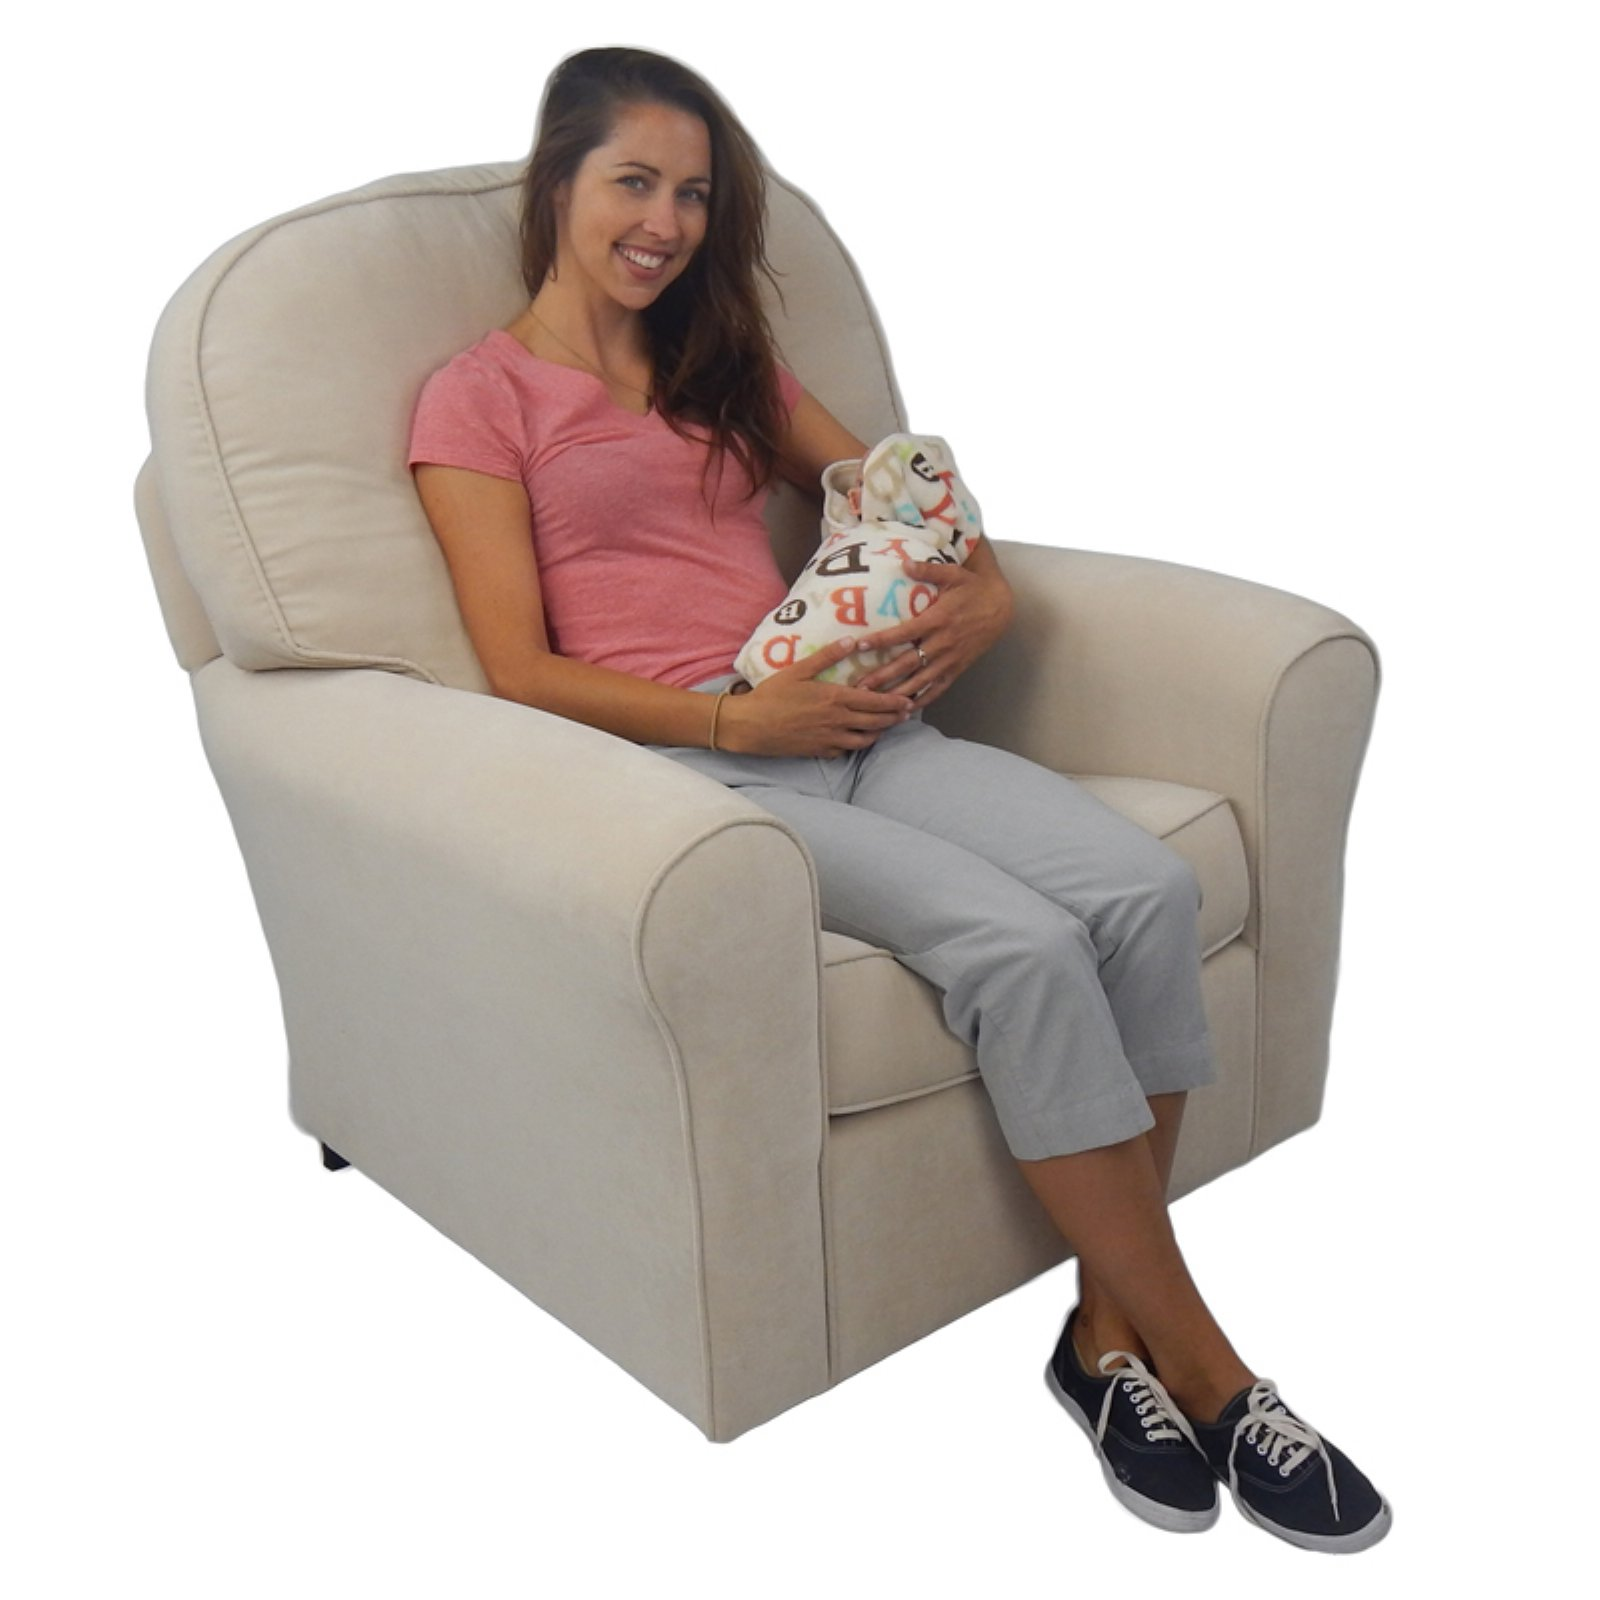 Life Style Furnishings Comfy Cozy Glider